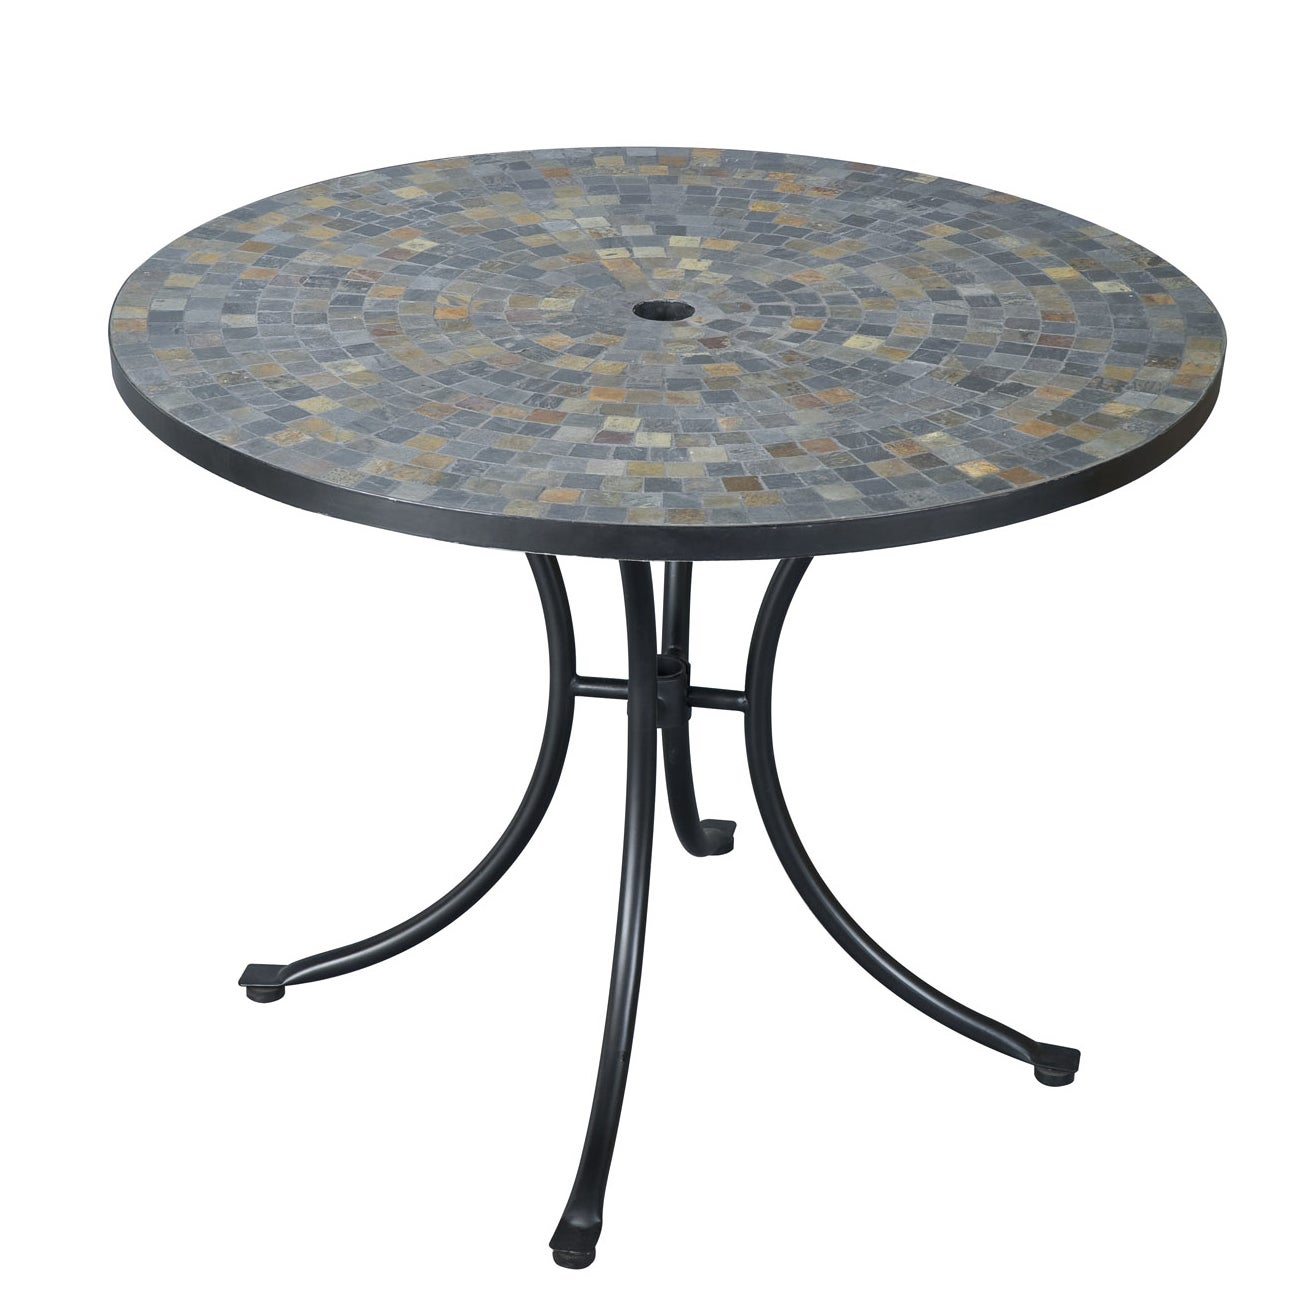 Stone Harbor Slate Tile Top Dining Table by Home Styles (...